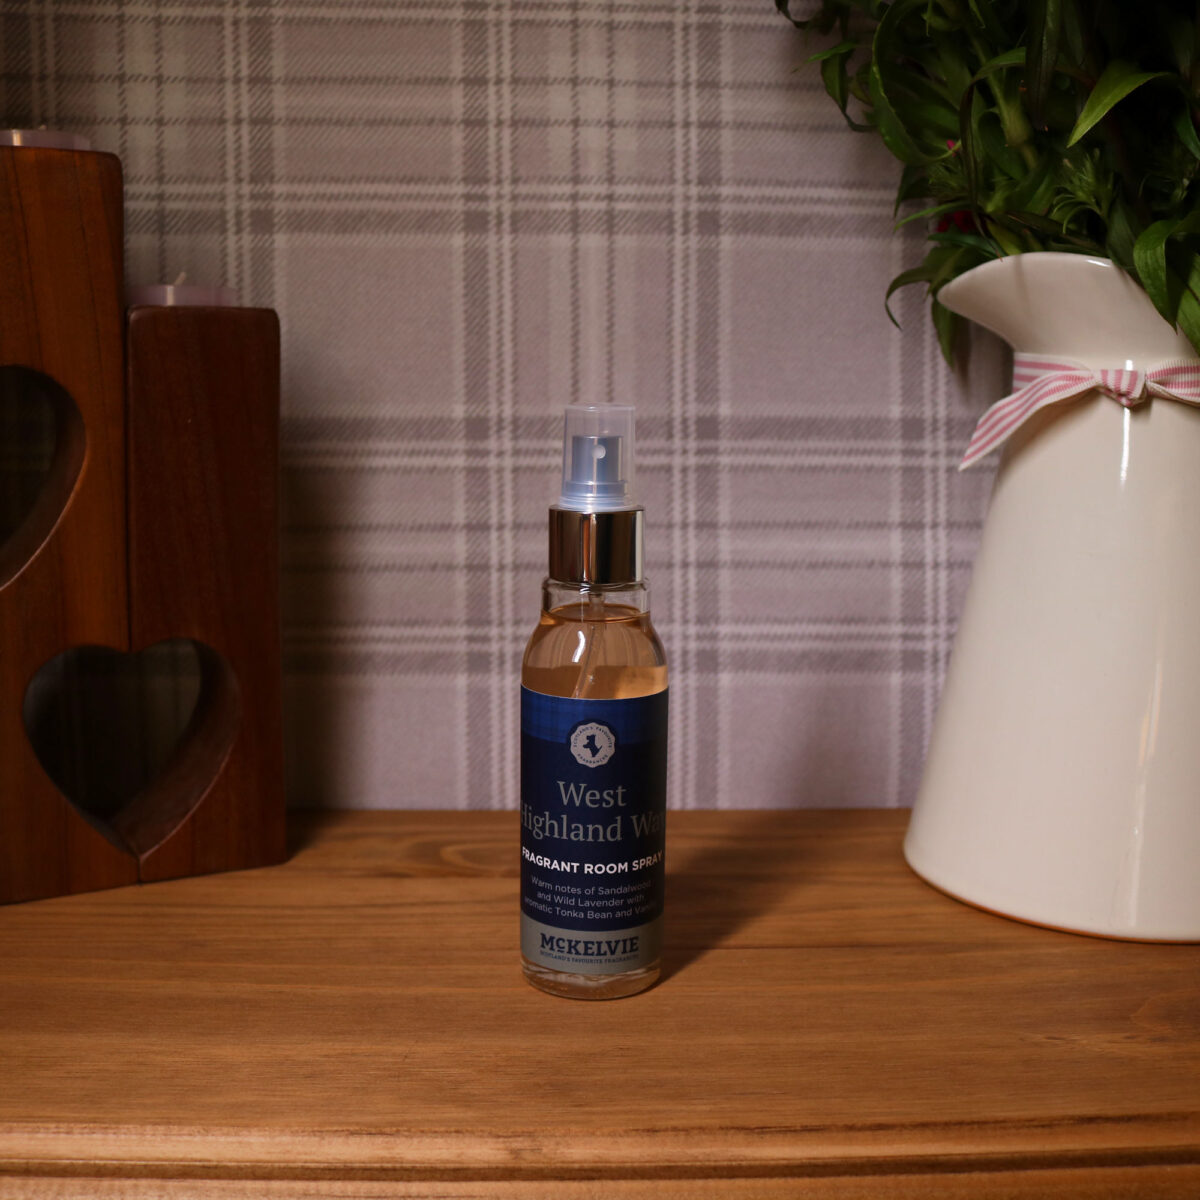 West Highland Way Fragrant Room Spray